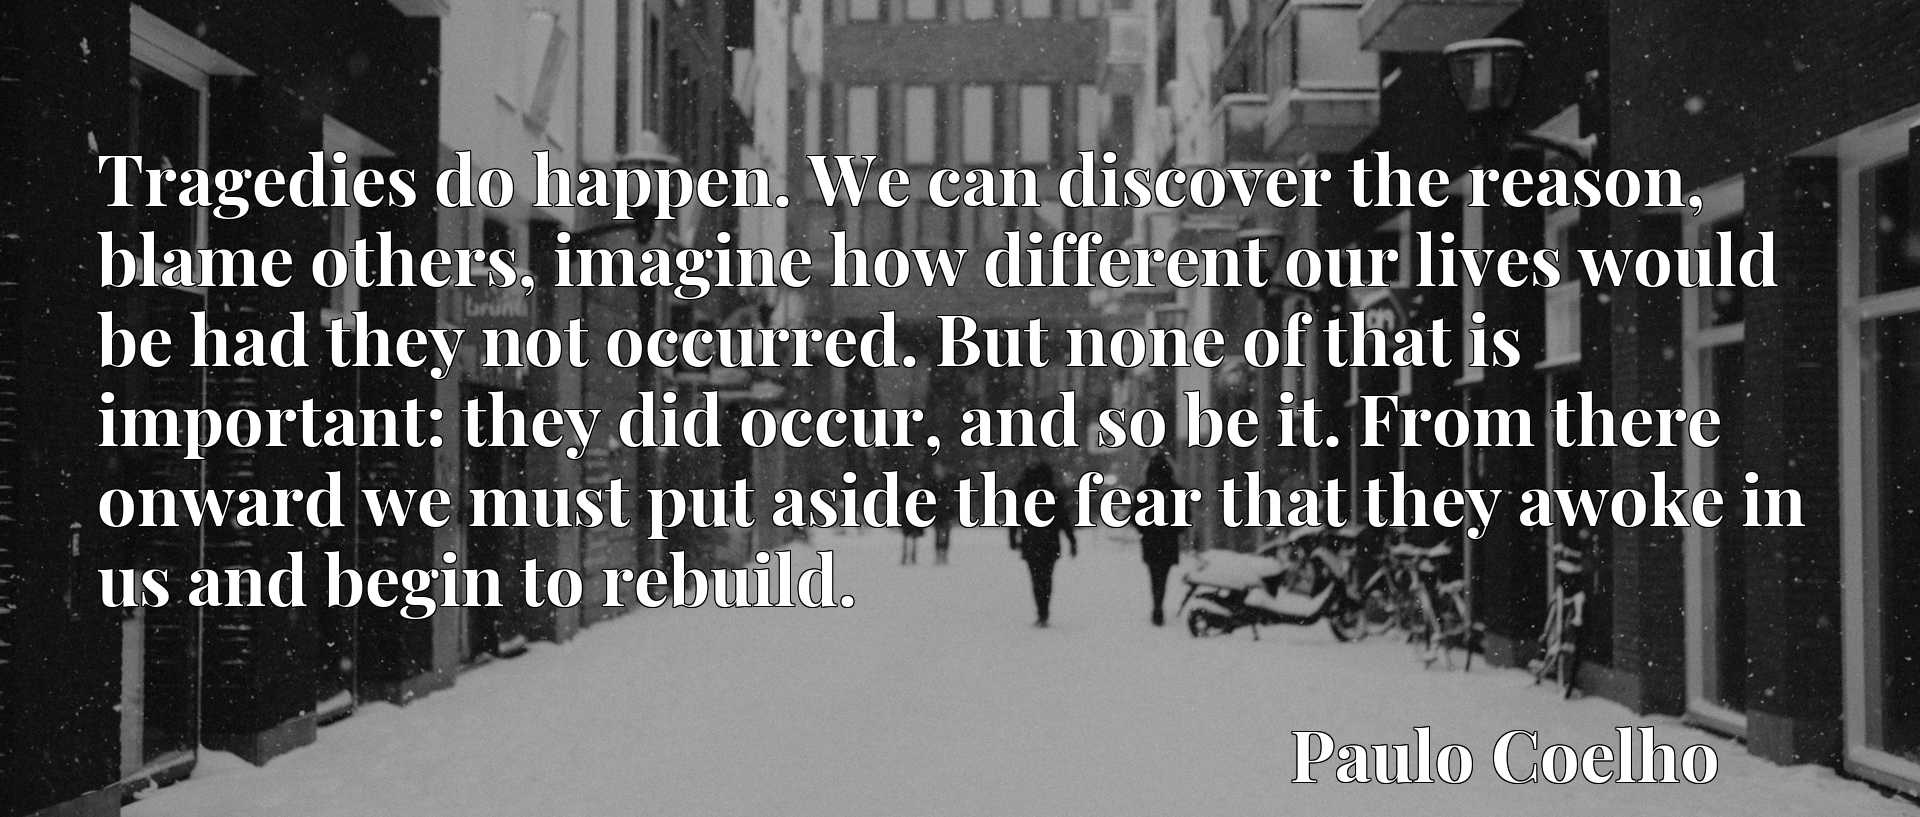 Tragedies do happen. We can discover the reason, blame others, imagine how different our lives would be had they not occurred. But none of that is important: they did occur, and so be it. From there onward we must put aside the fear that they awoke in us and begin to rebuild.